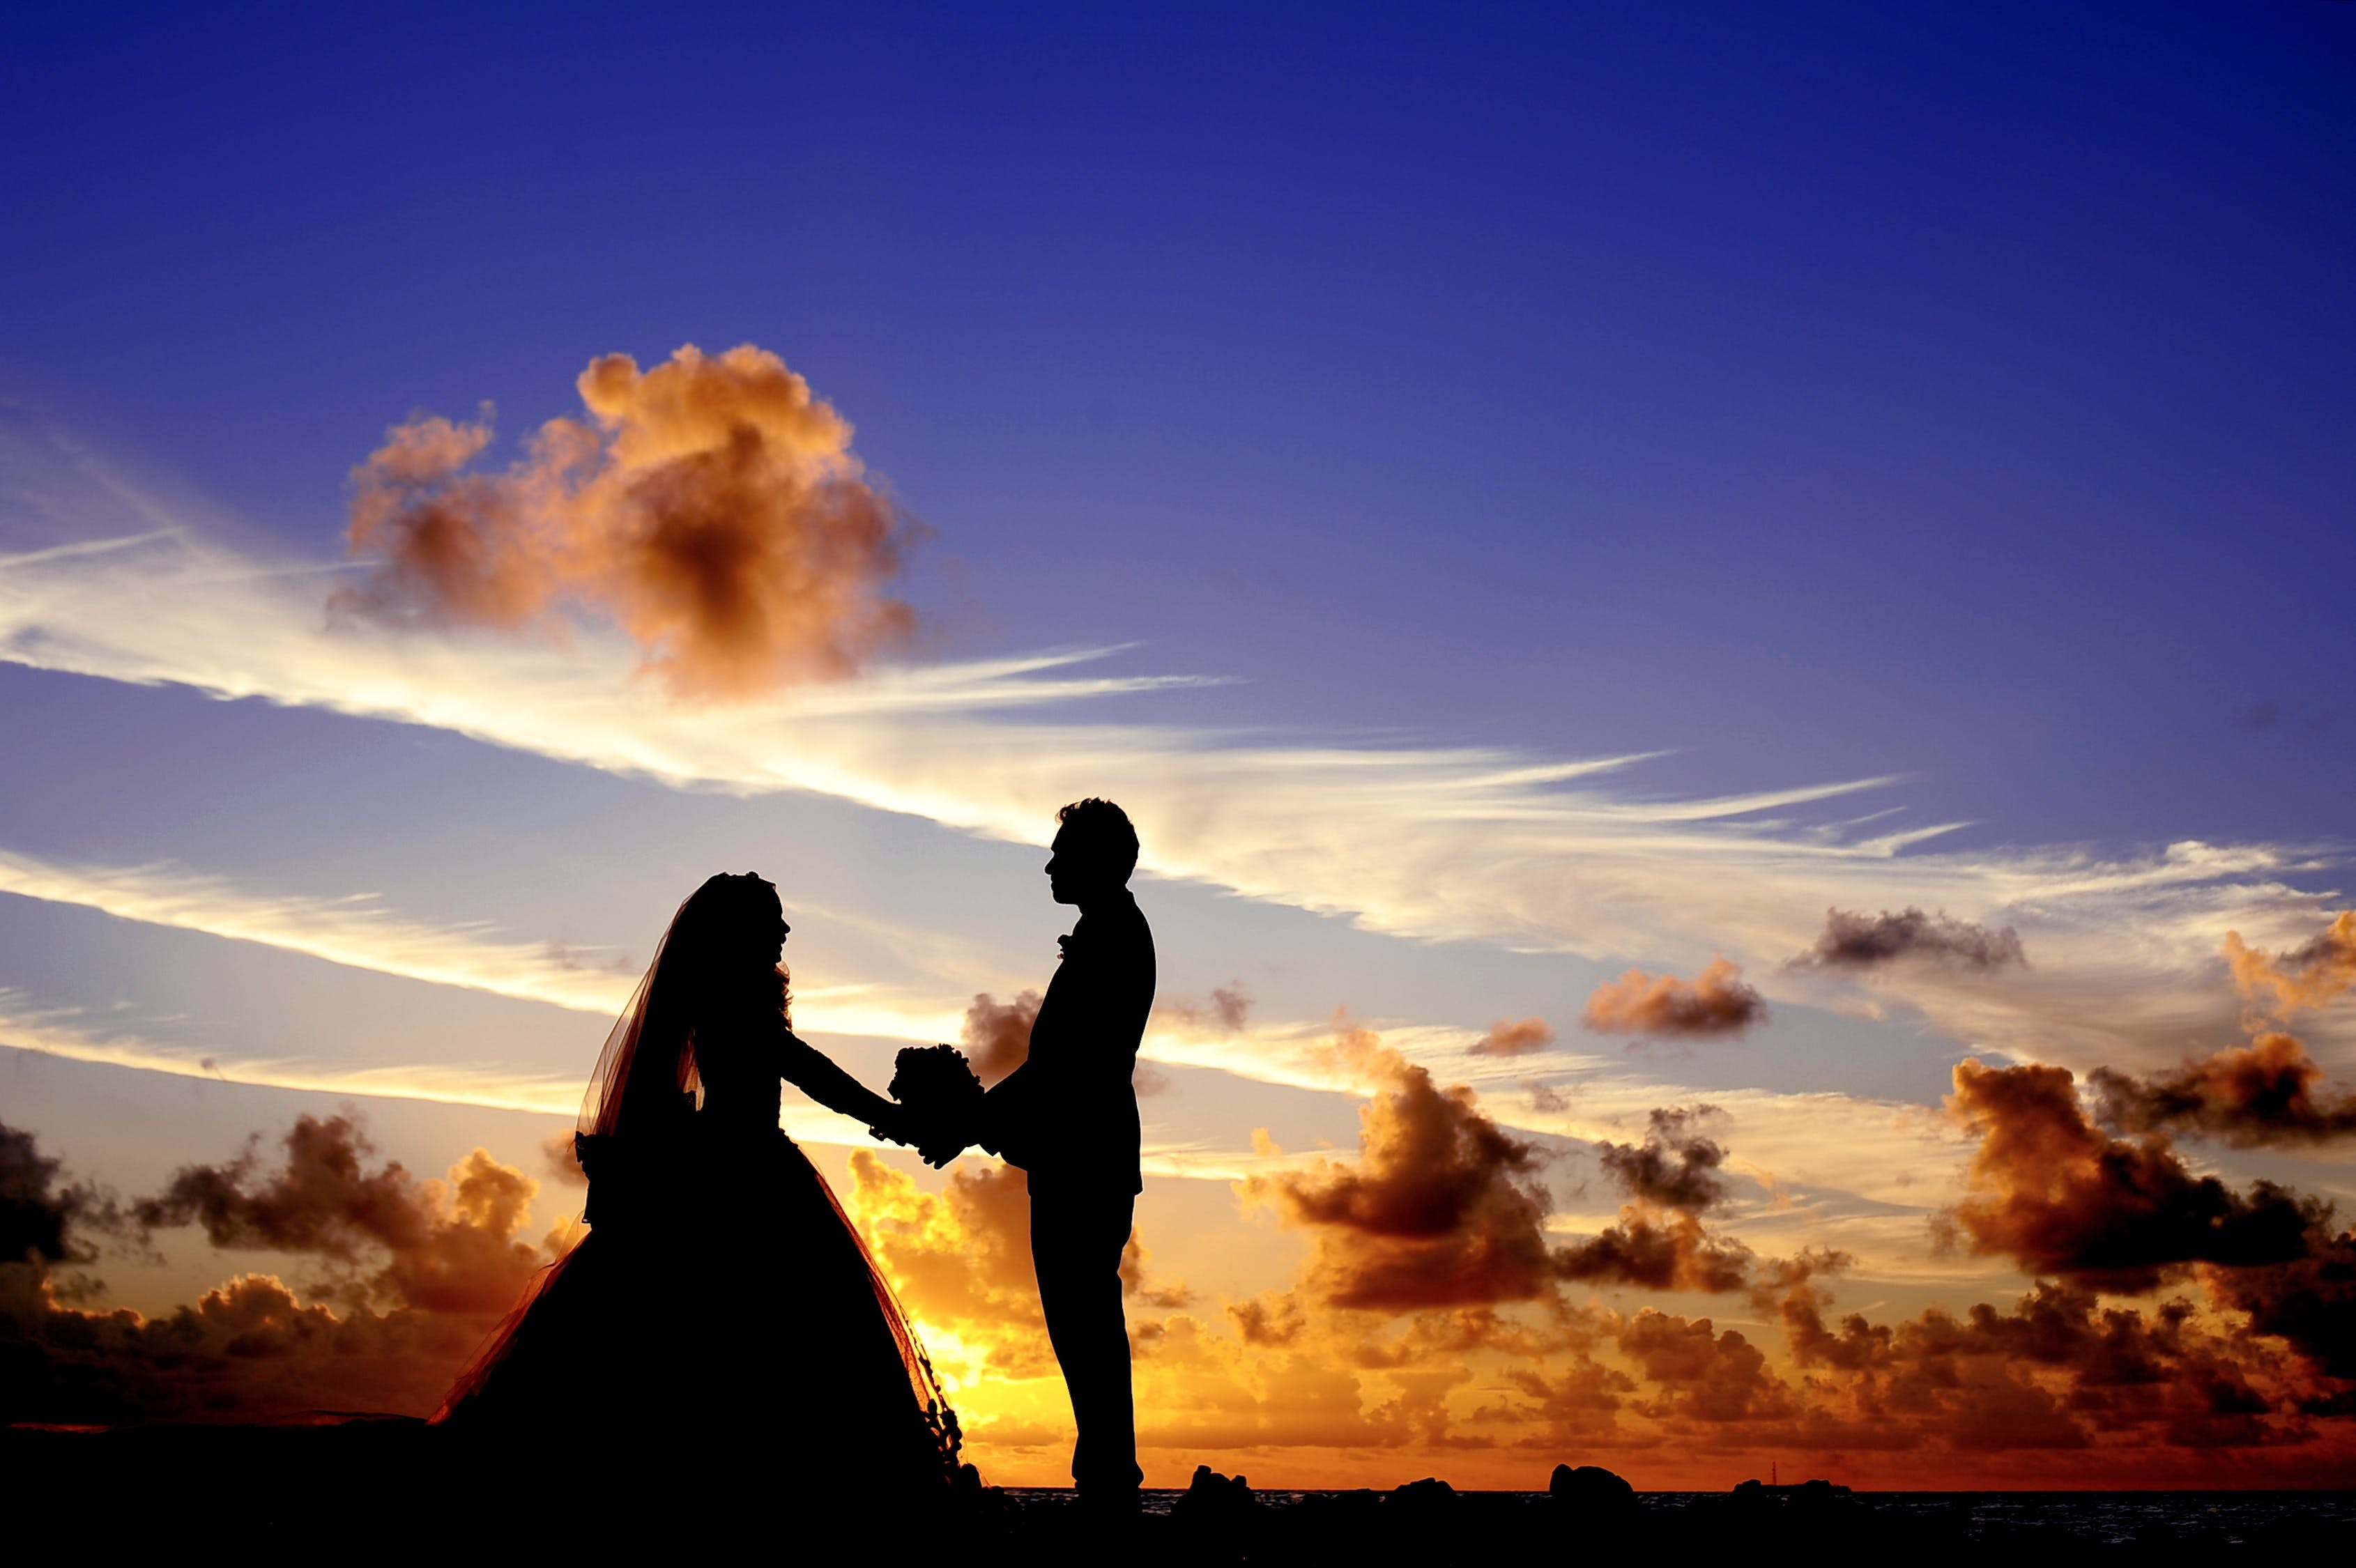 Second marriage offers you a chance to fall in love again and find a soulmate to spend your rest of the life happily.